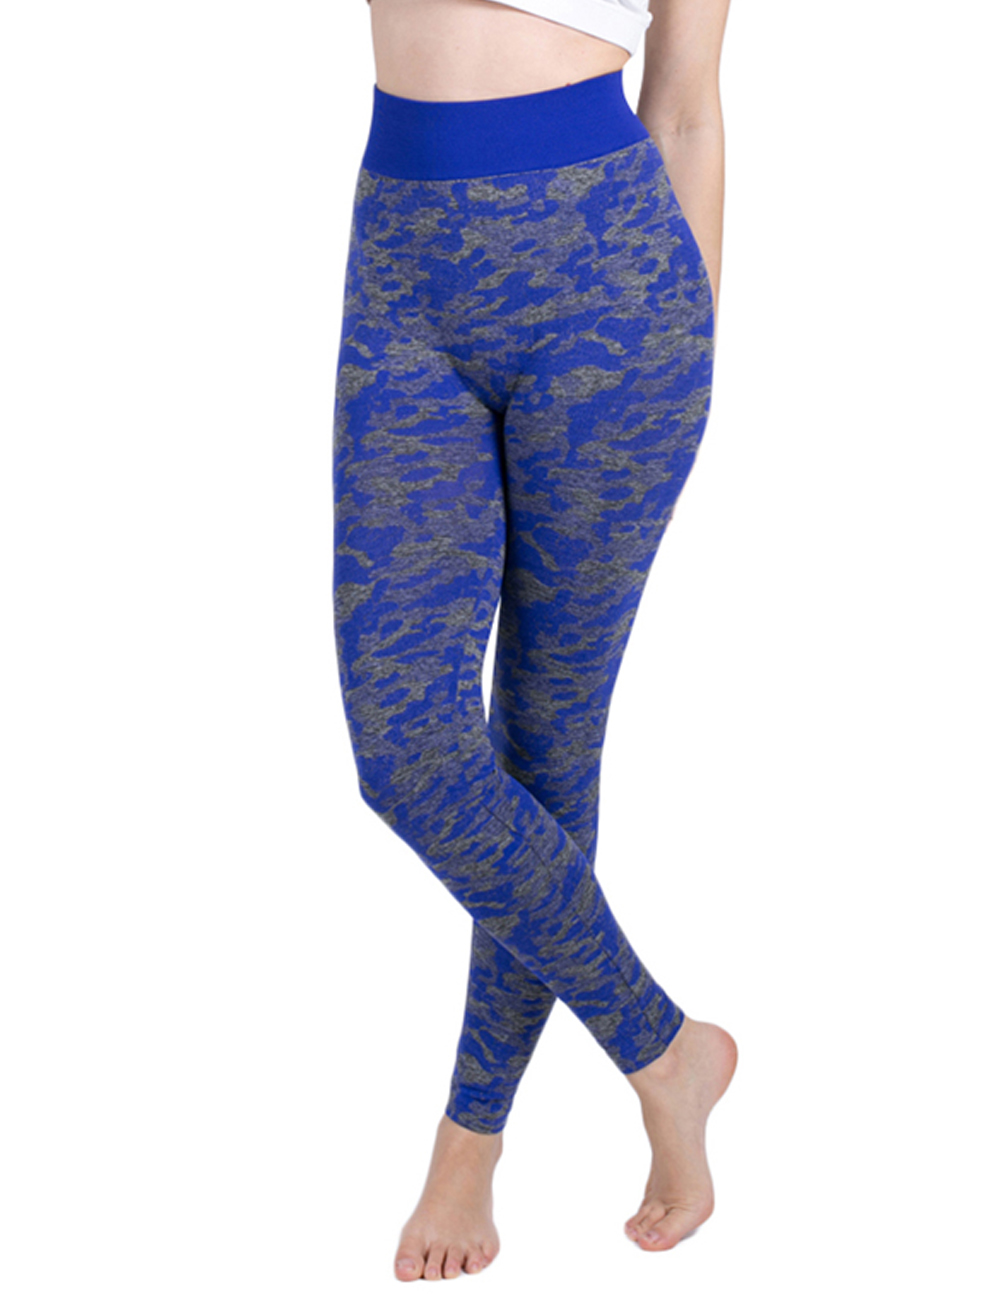 //cdn.affectcloud.com/hexinfashion/upload/imgs/Sportswear/Yoga_Legging/H180115-BU05/H180115-BU05-201911055dc145522204f.jpg